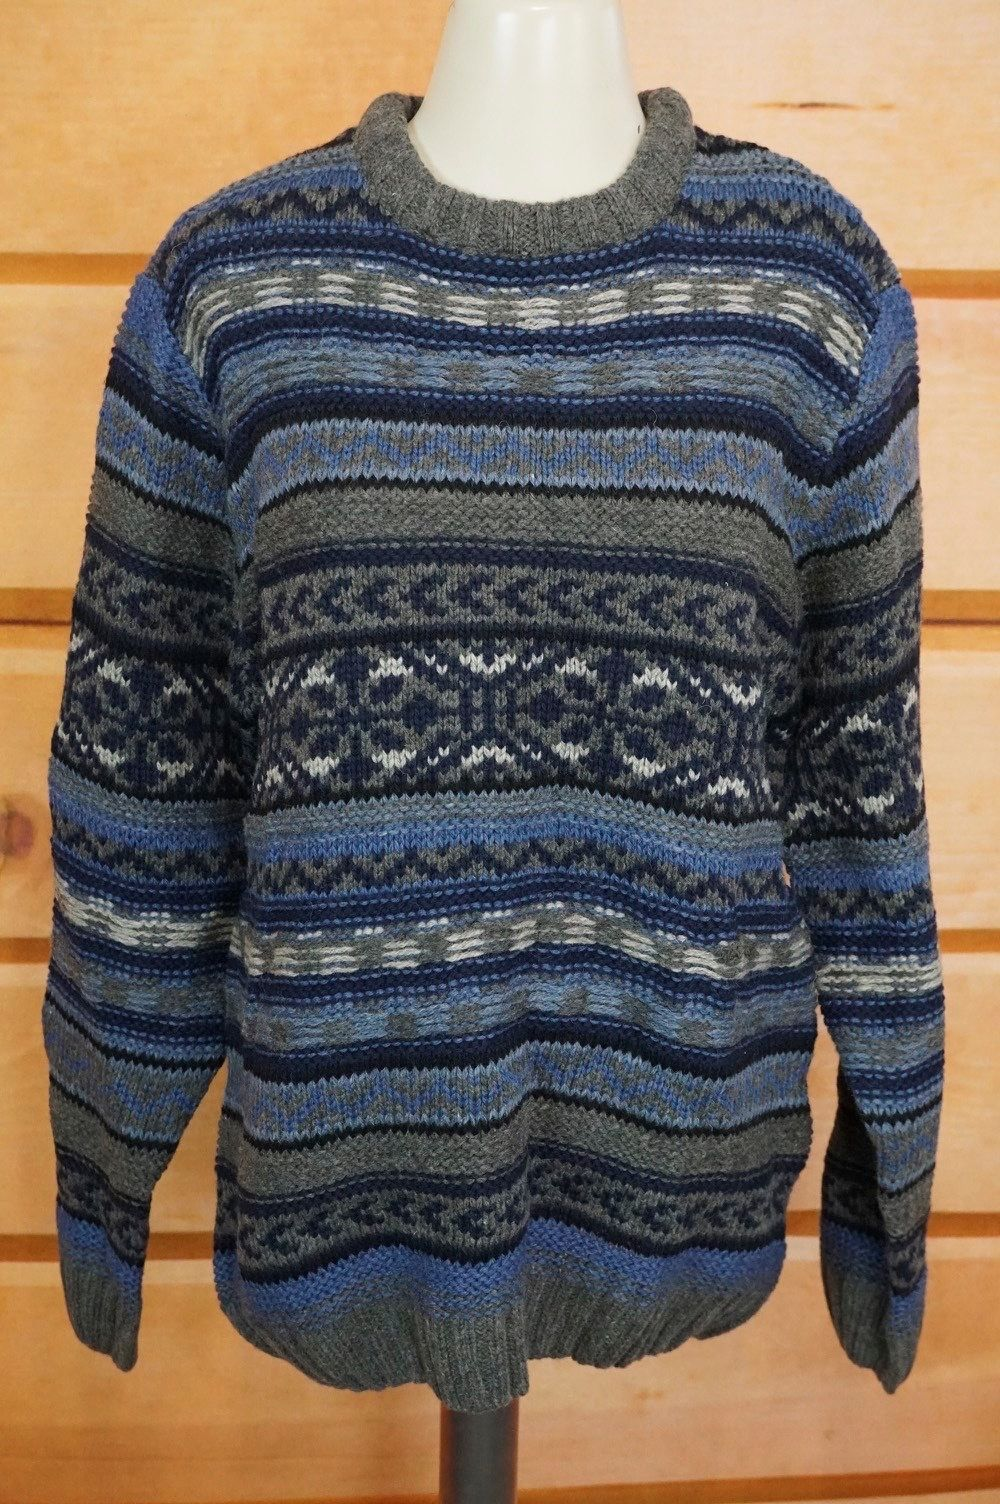 NATIVE YOUTH | Winter Fisherman Knit Sweater and 50 similar items